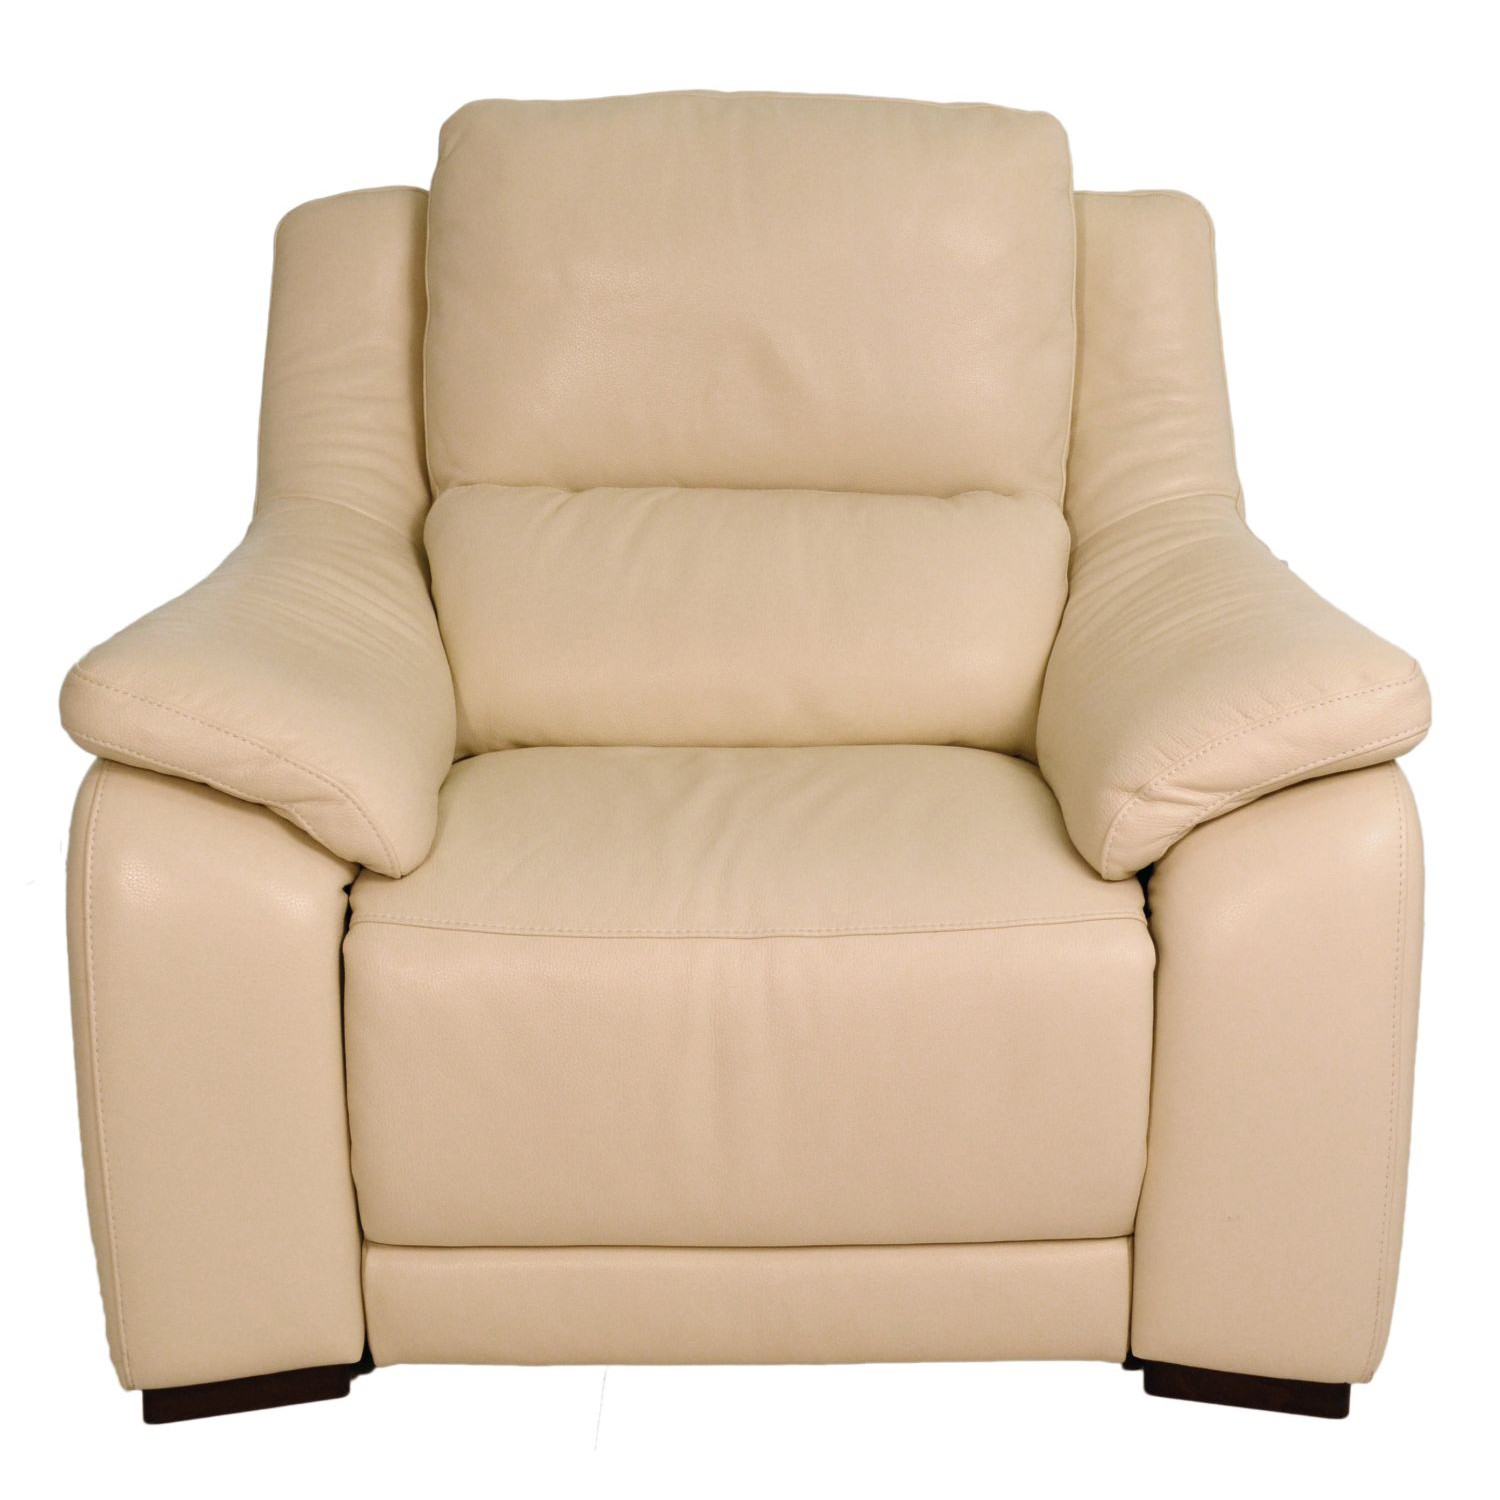 power recliner chairs uk rent chair covers and sashes near me polo divani degano leekes